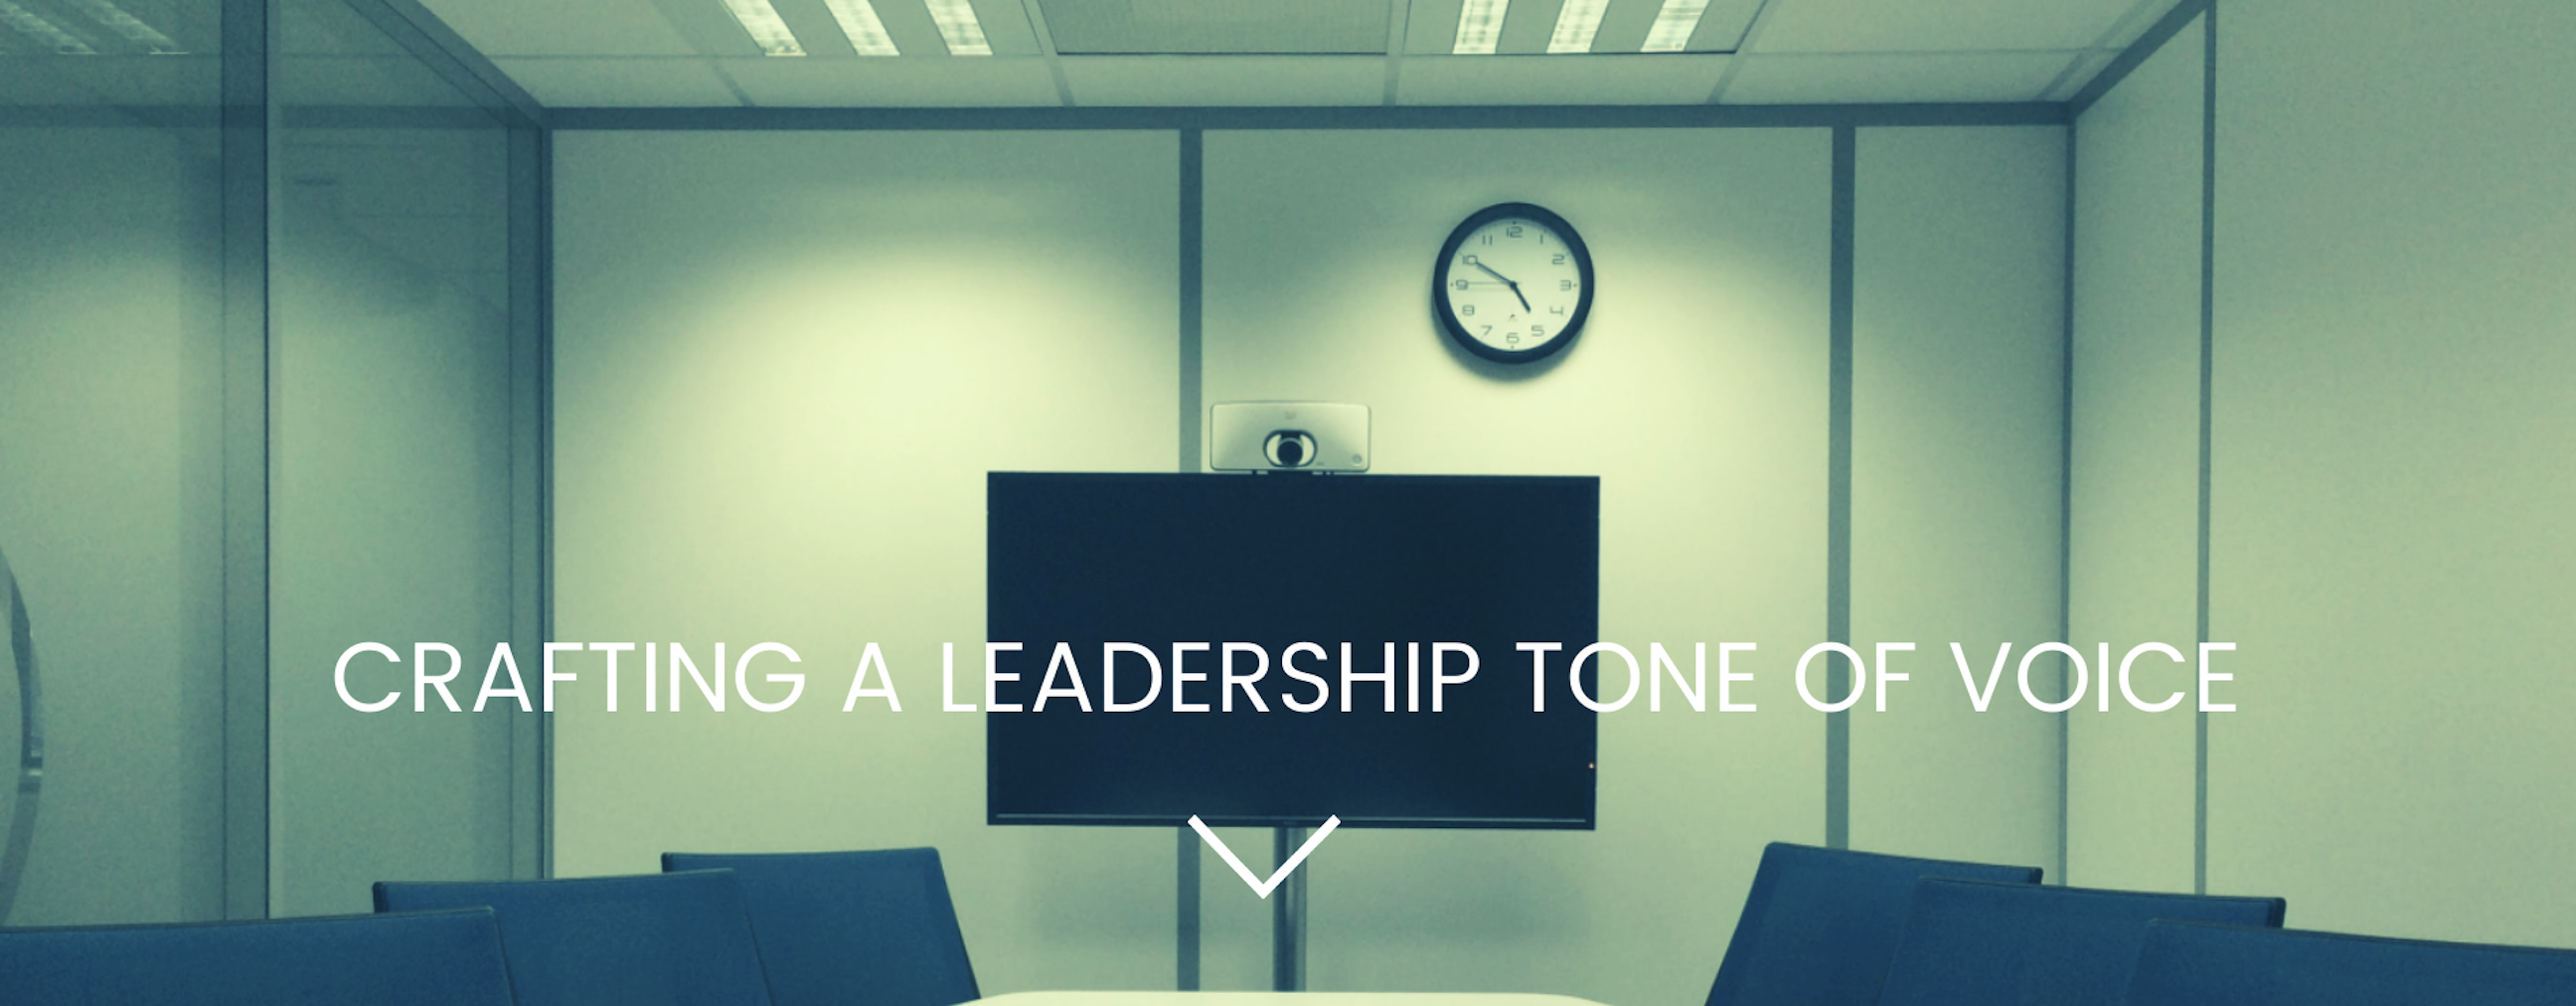 Crafting a Leadership Tone of Voice